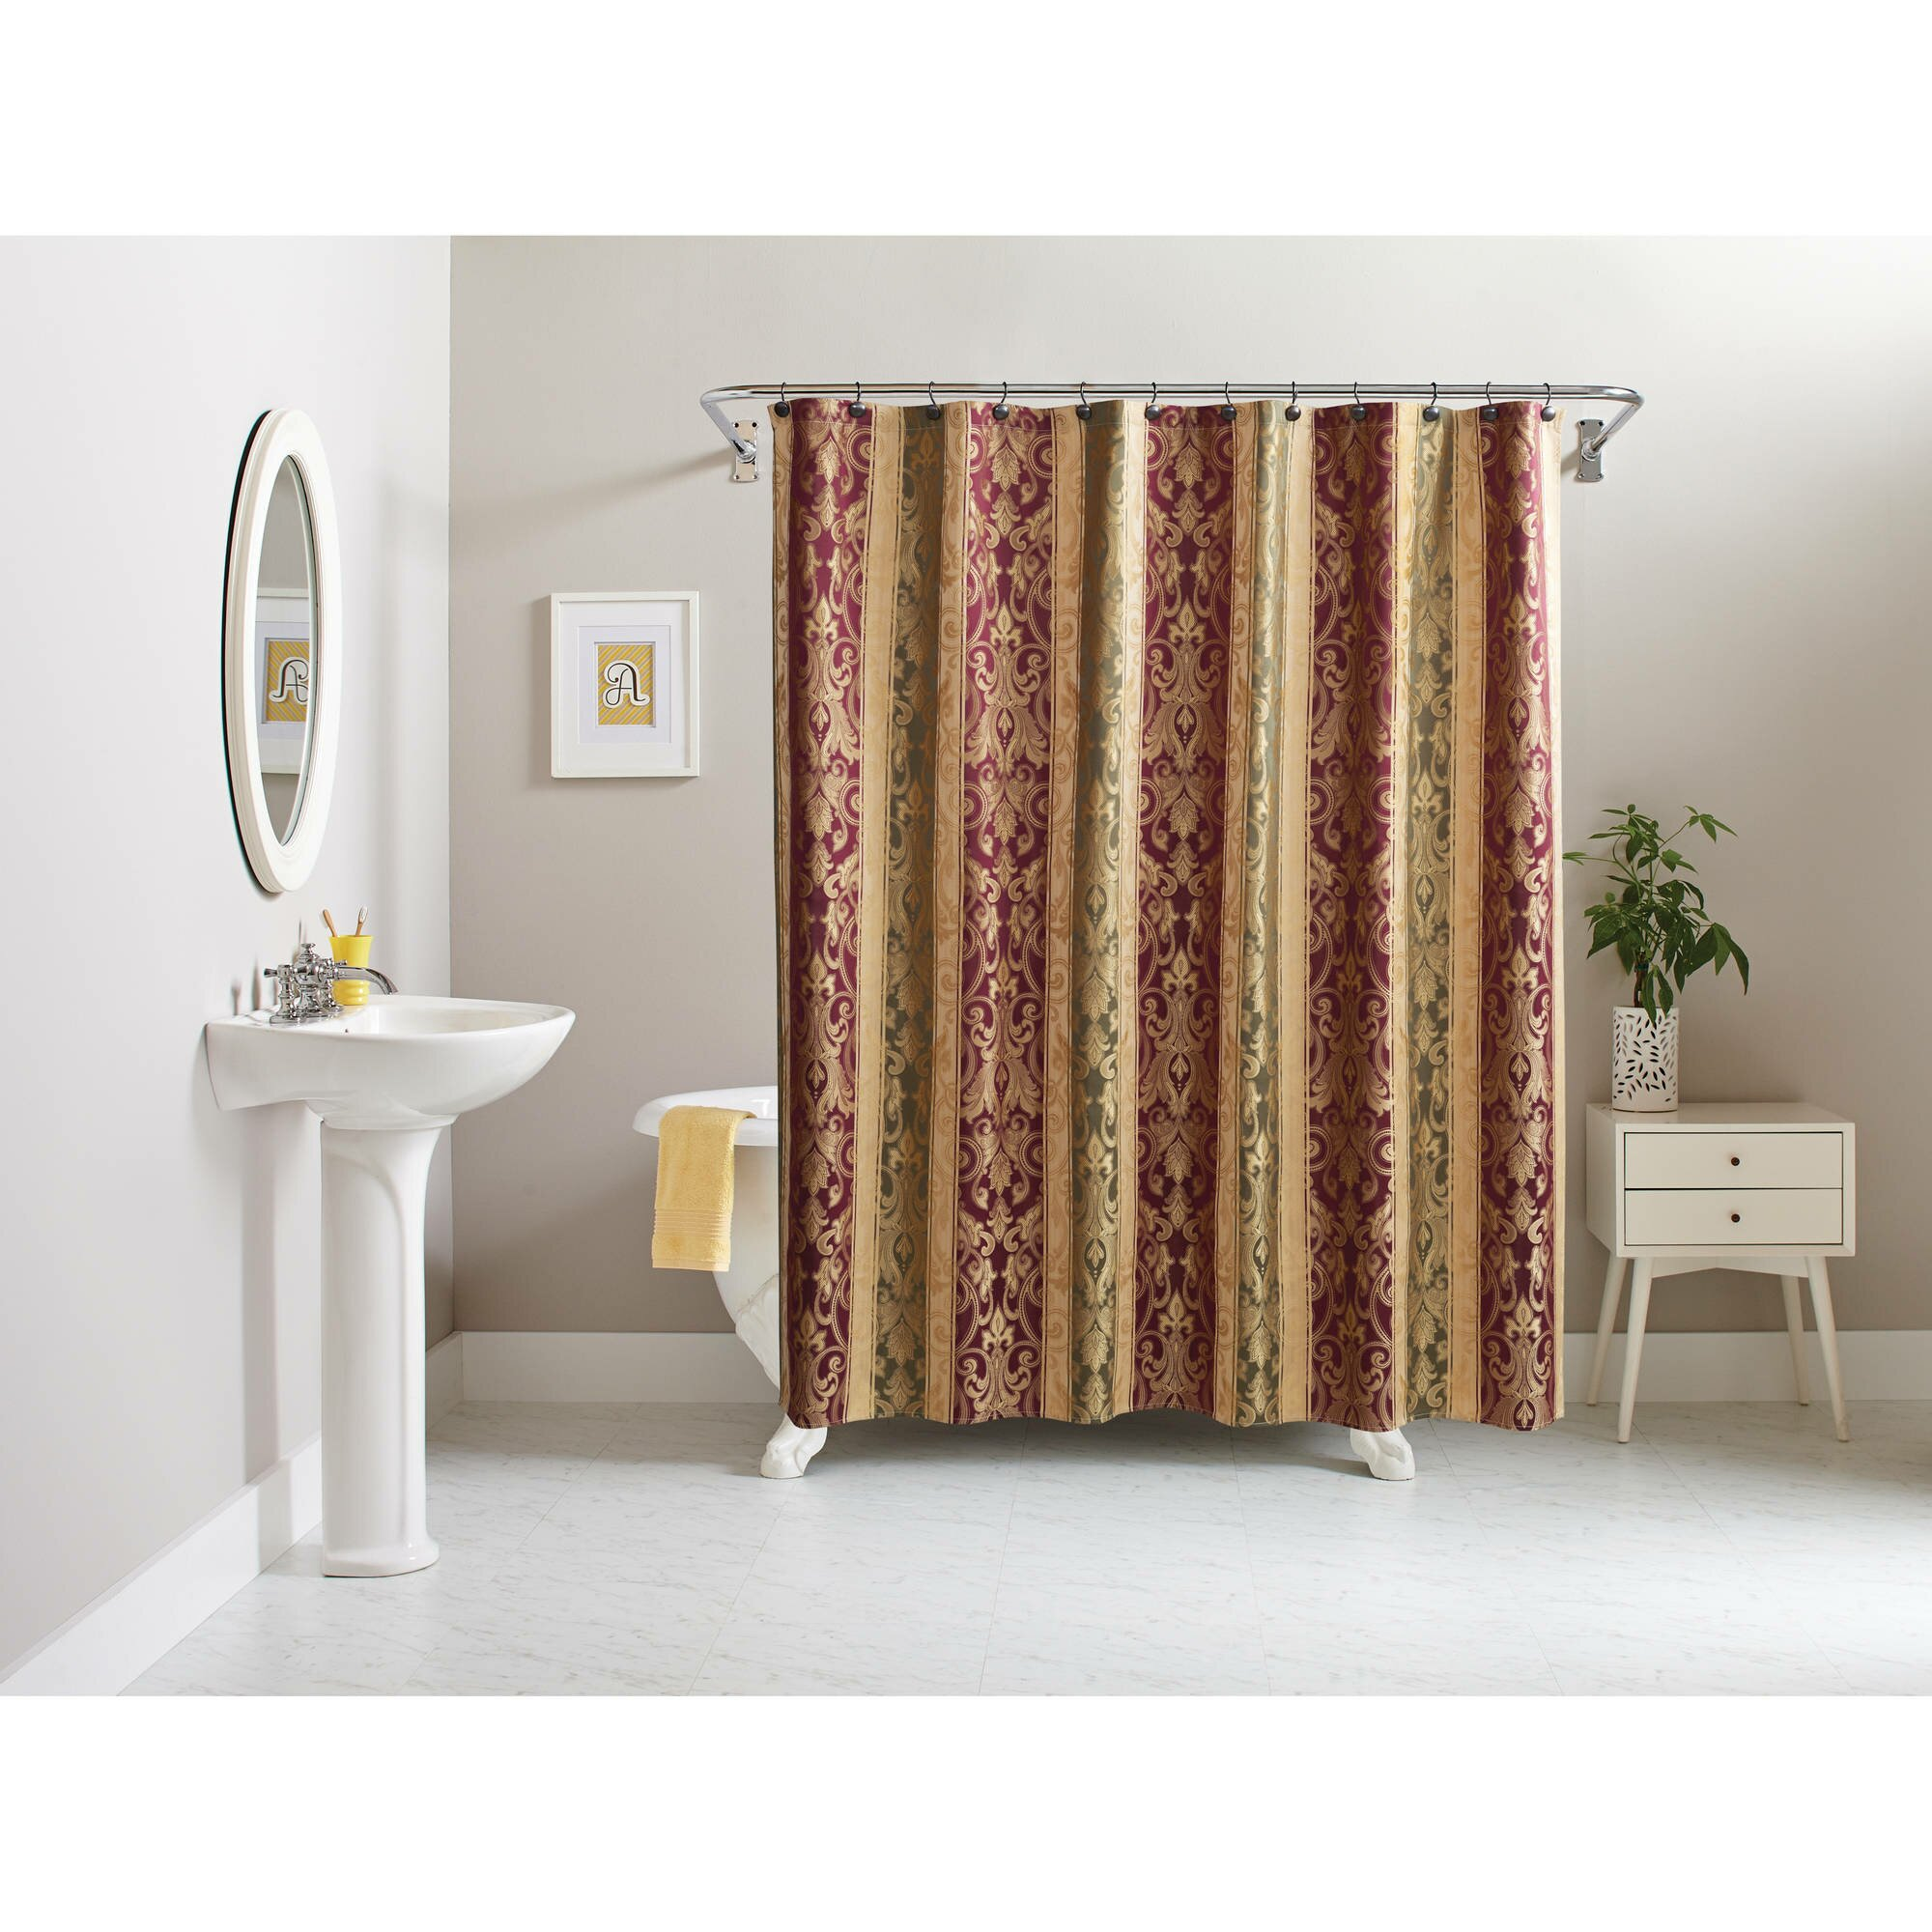 Walmart Shower Curtain for Cute Your Bathroom Decor Ideas: Bathroom Curtains Walmart | Walmart Shower Curtain | Matching Shower And Window Curtain Sets